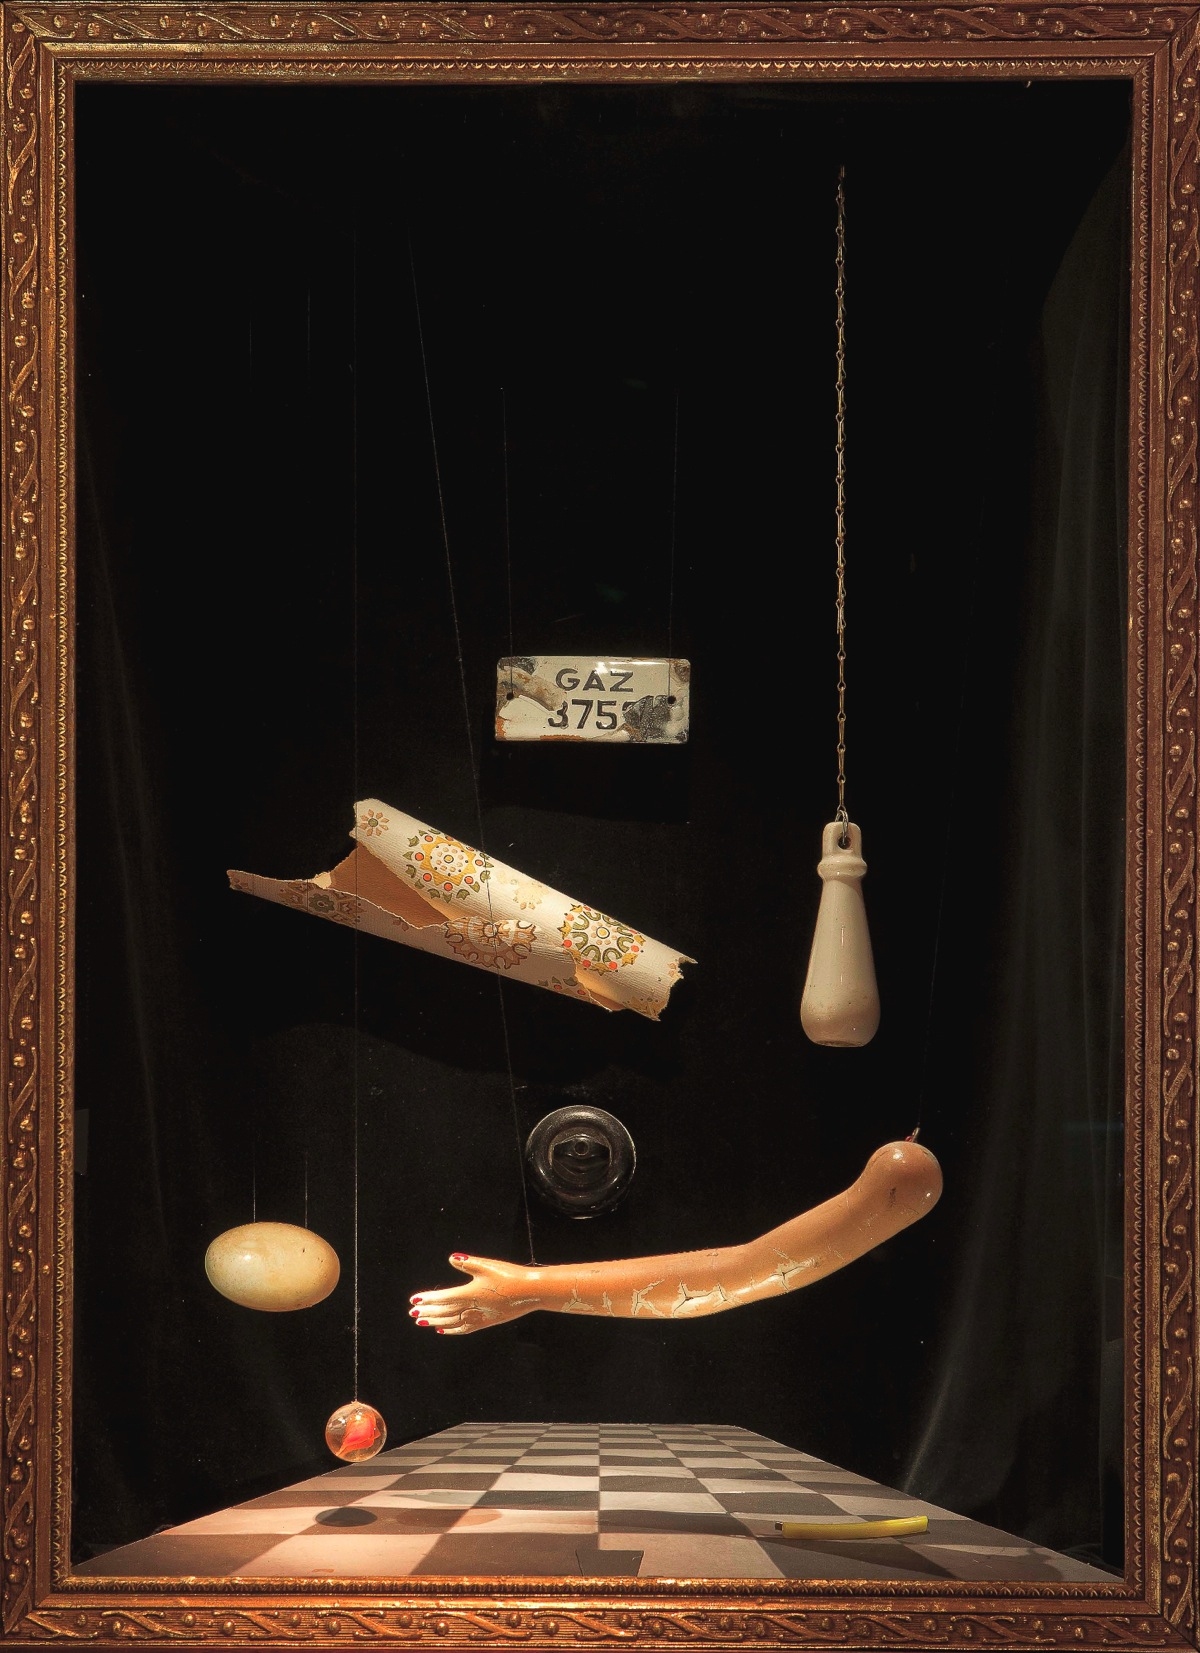 Author Orhan Pamuk brings his Museum of Innocence to ...